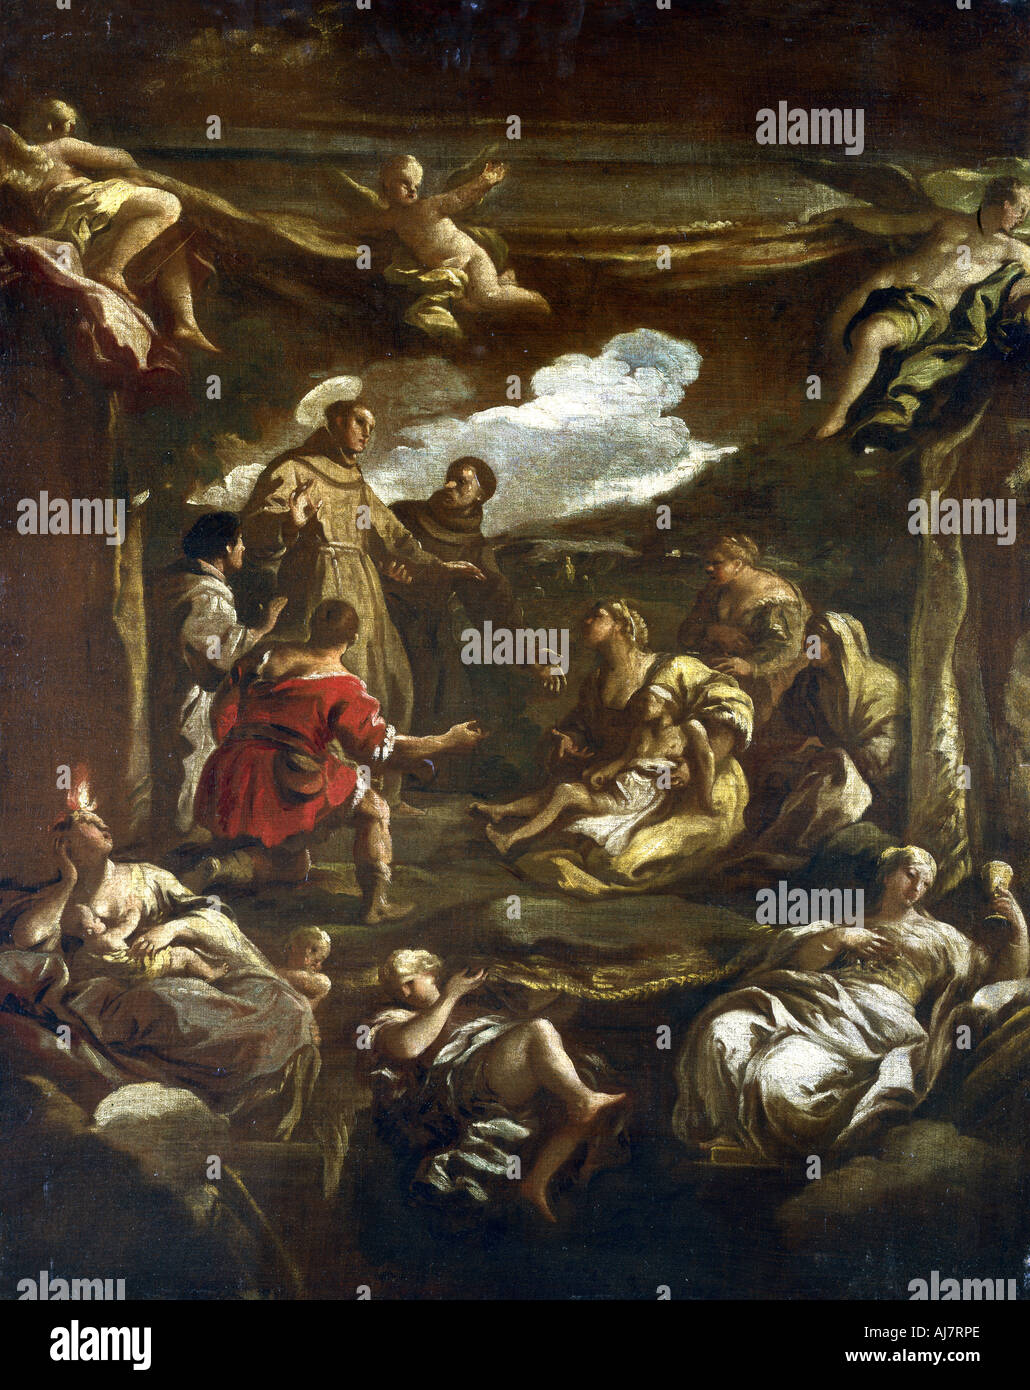 'St Anthony of Padua healing a young man', c1654-1705. Artist: Luca Giordano Stock Photo